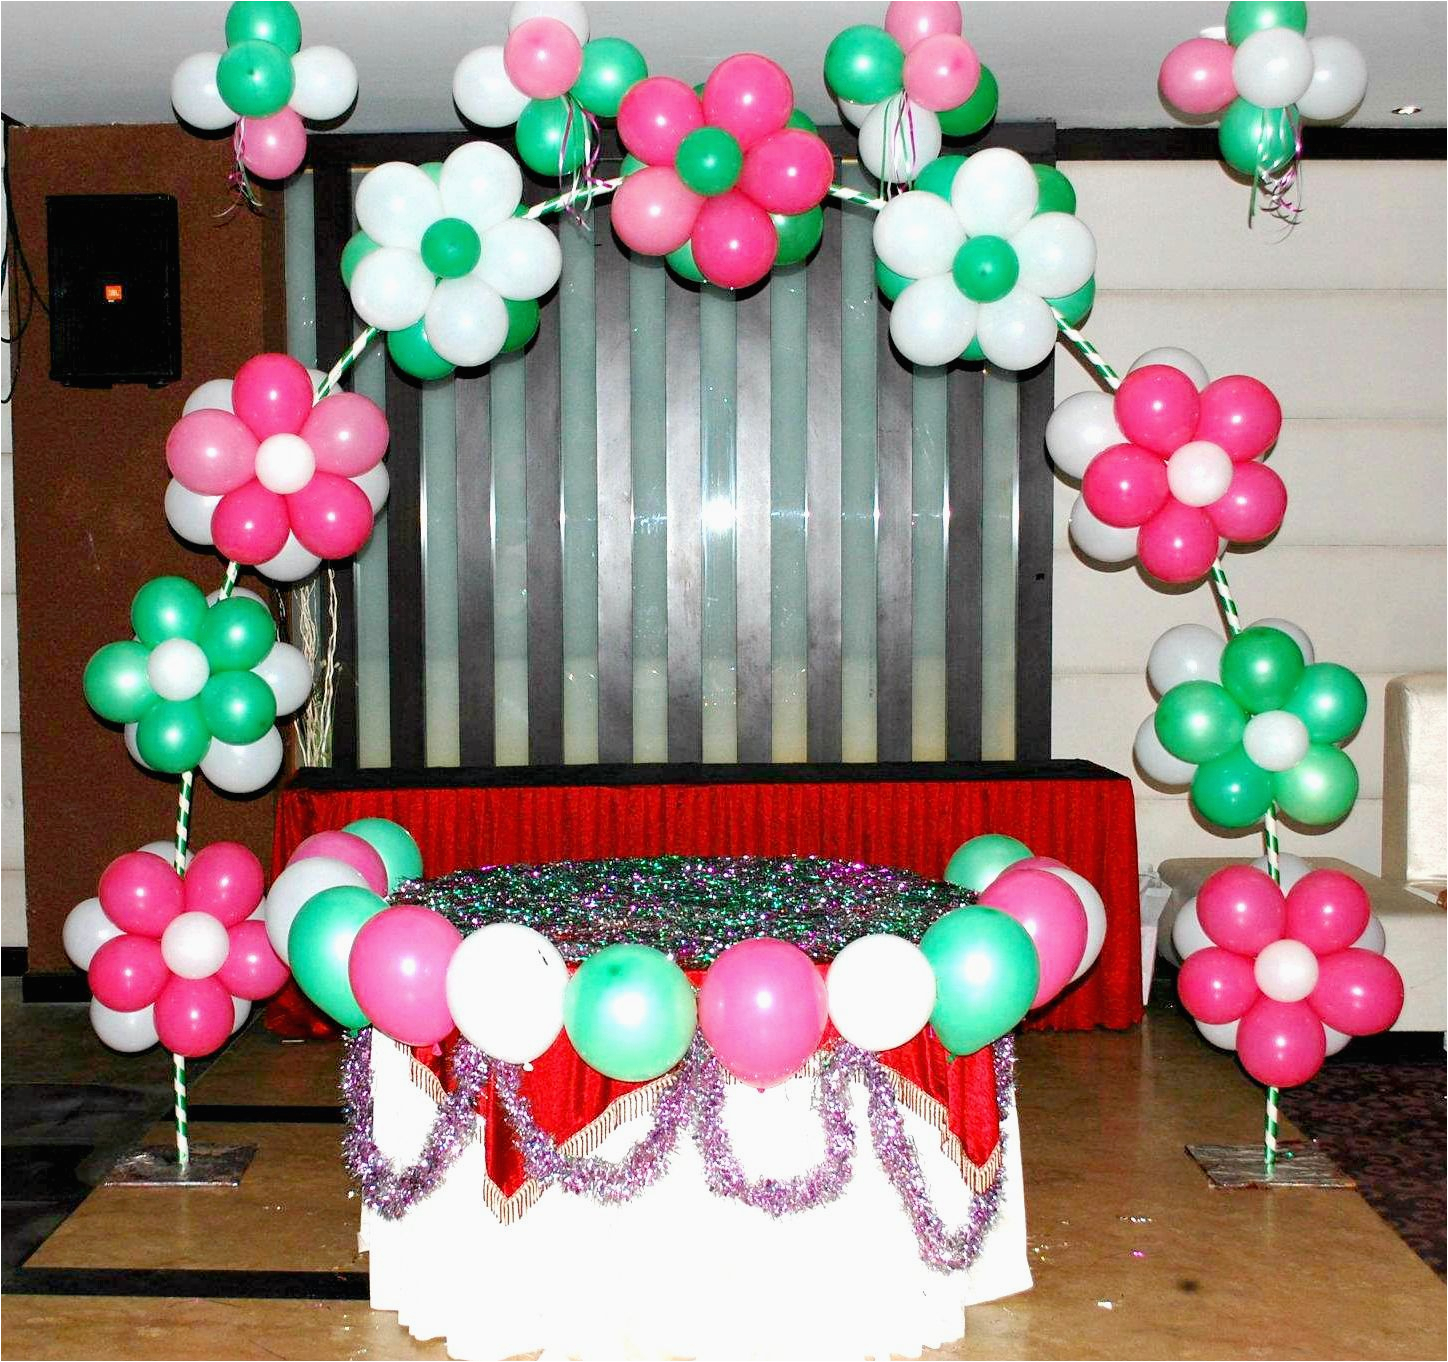 8 latest and trending balloon decorations home birthday party hyderabad